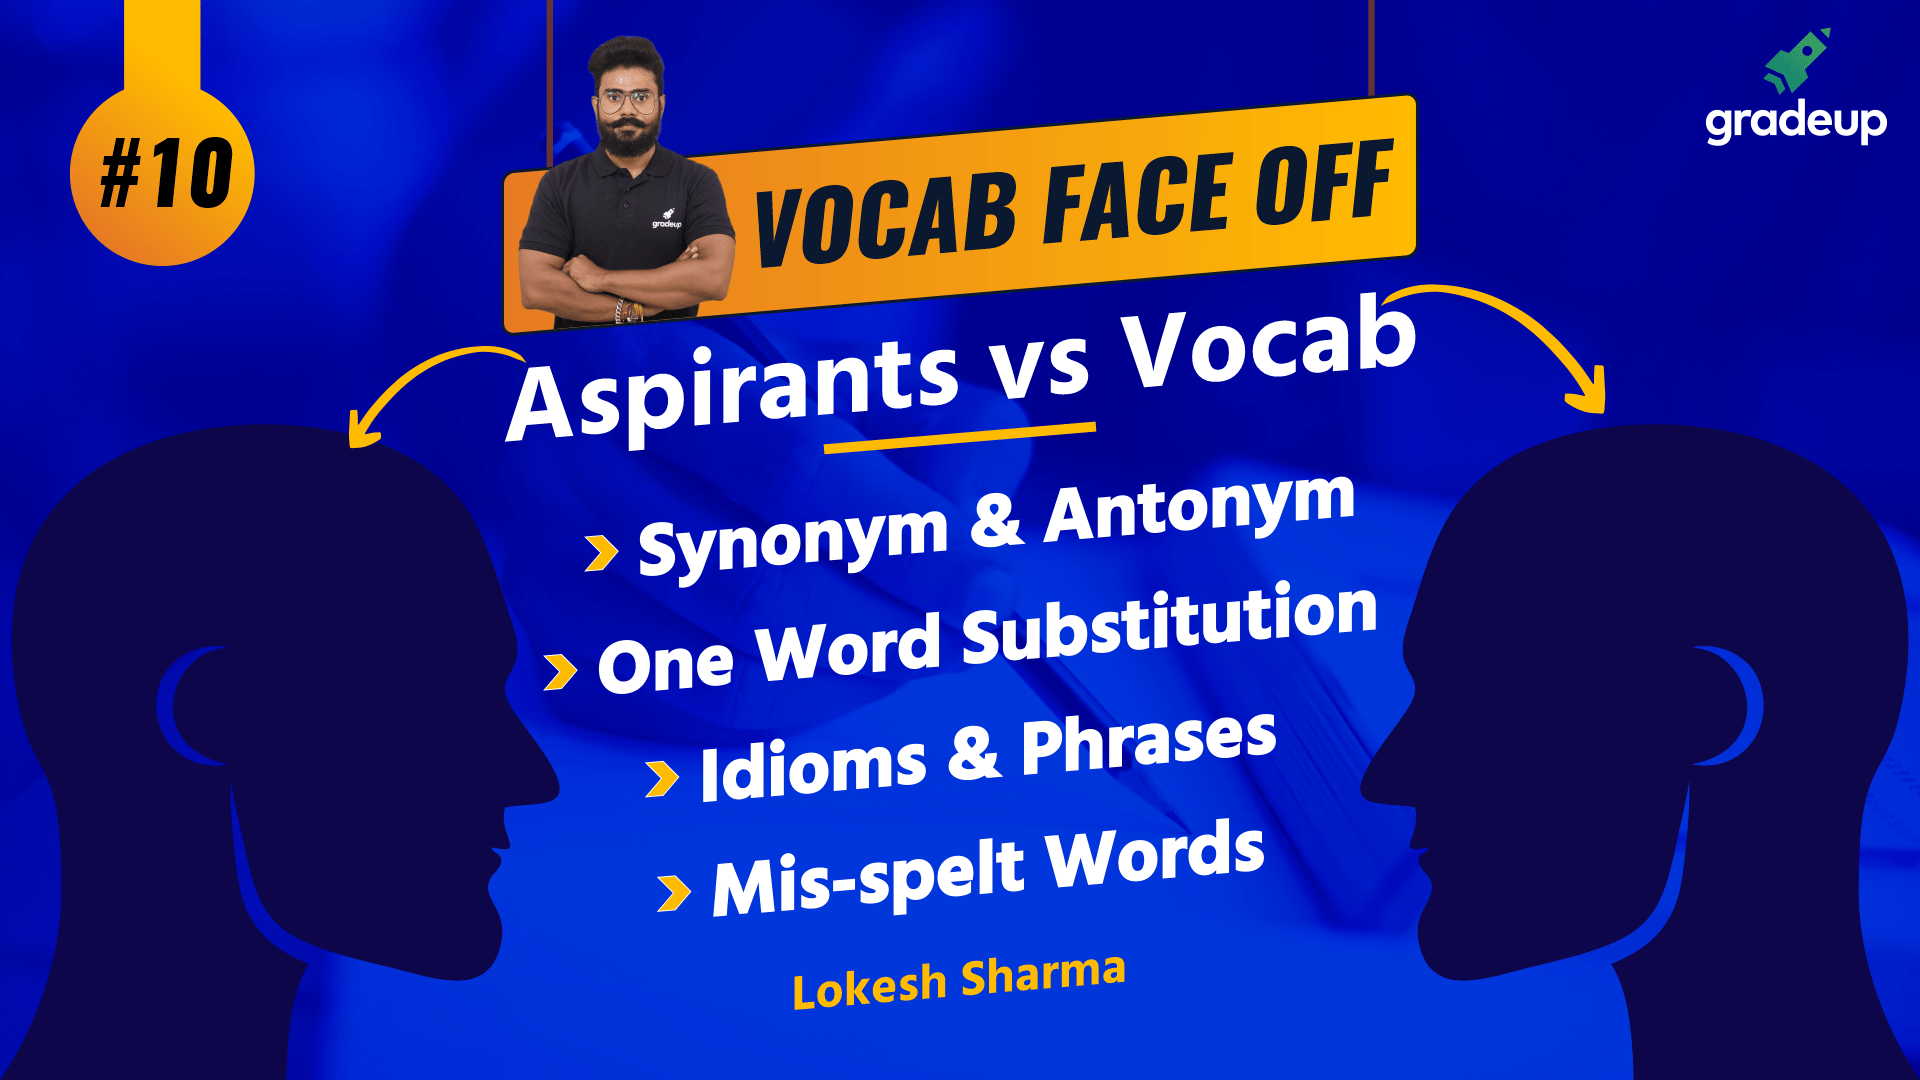 Vocab Faceoff - Aspirants Vs Vocab: Class 10